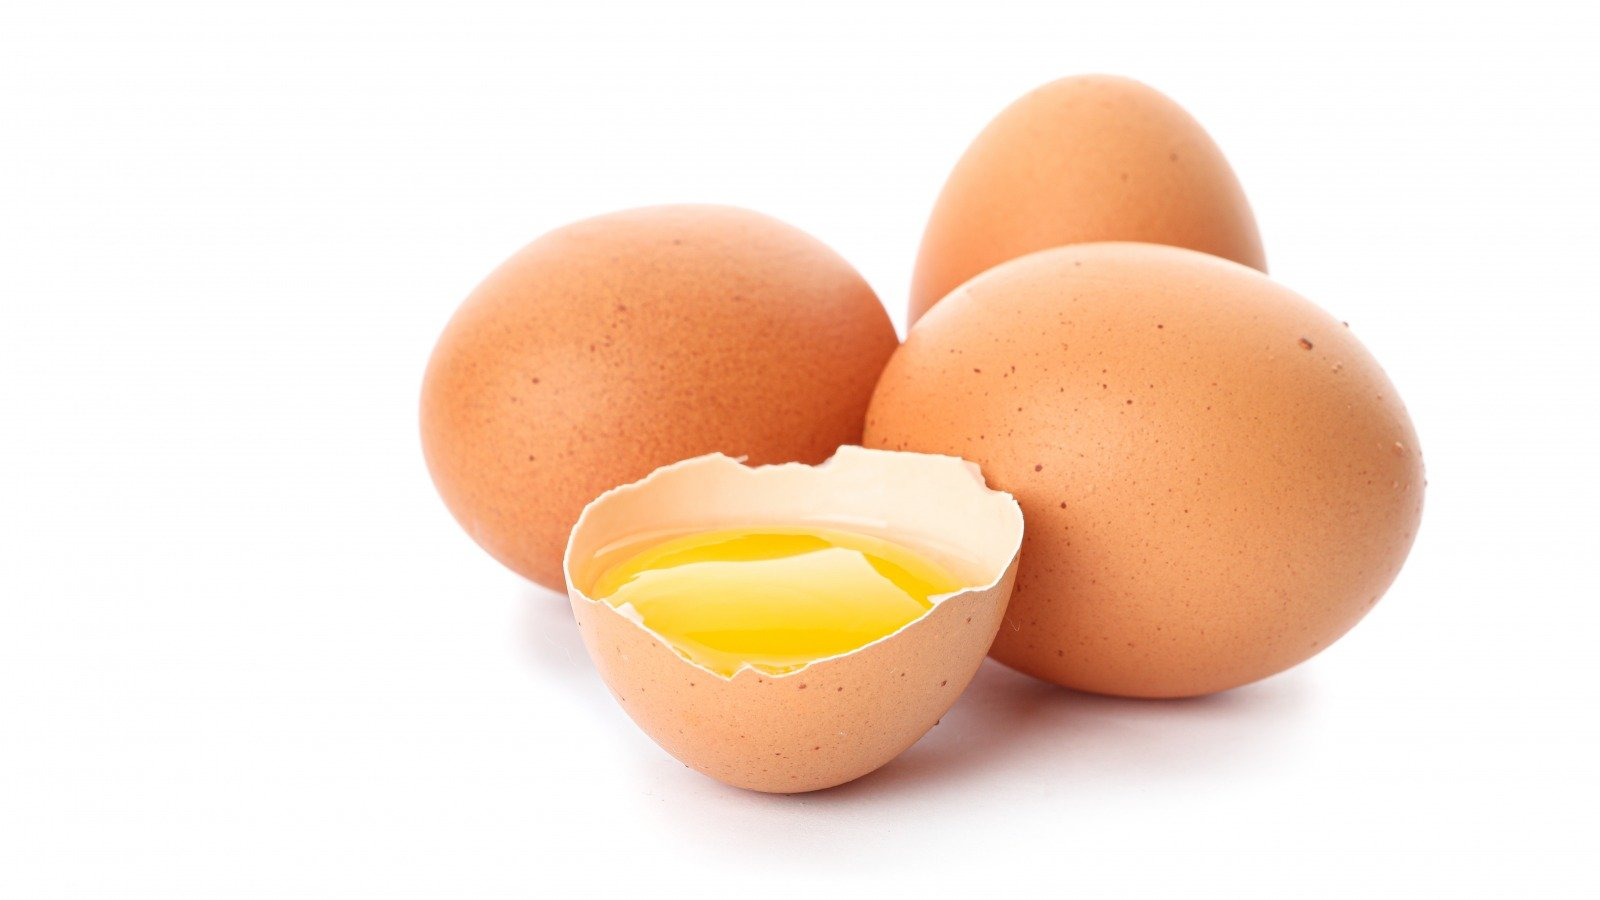 The Real Risk You're Taking When You Eat Raw Eggs